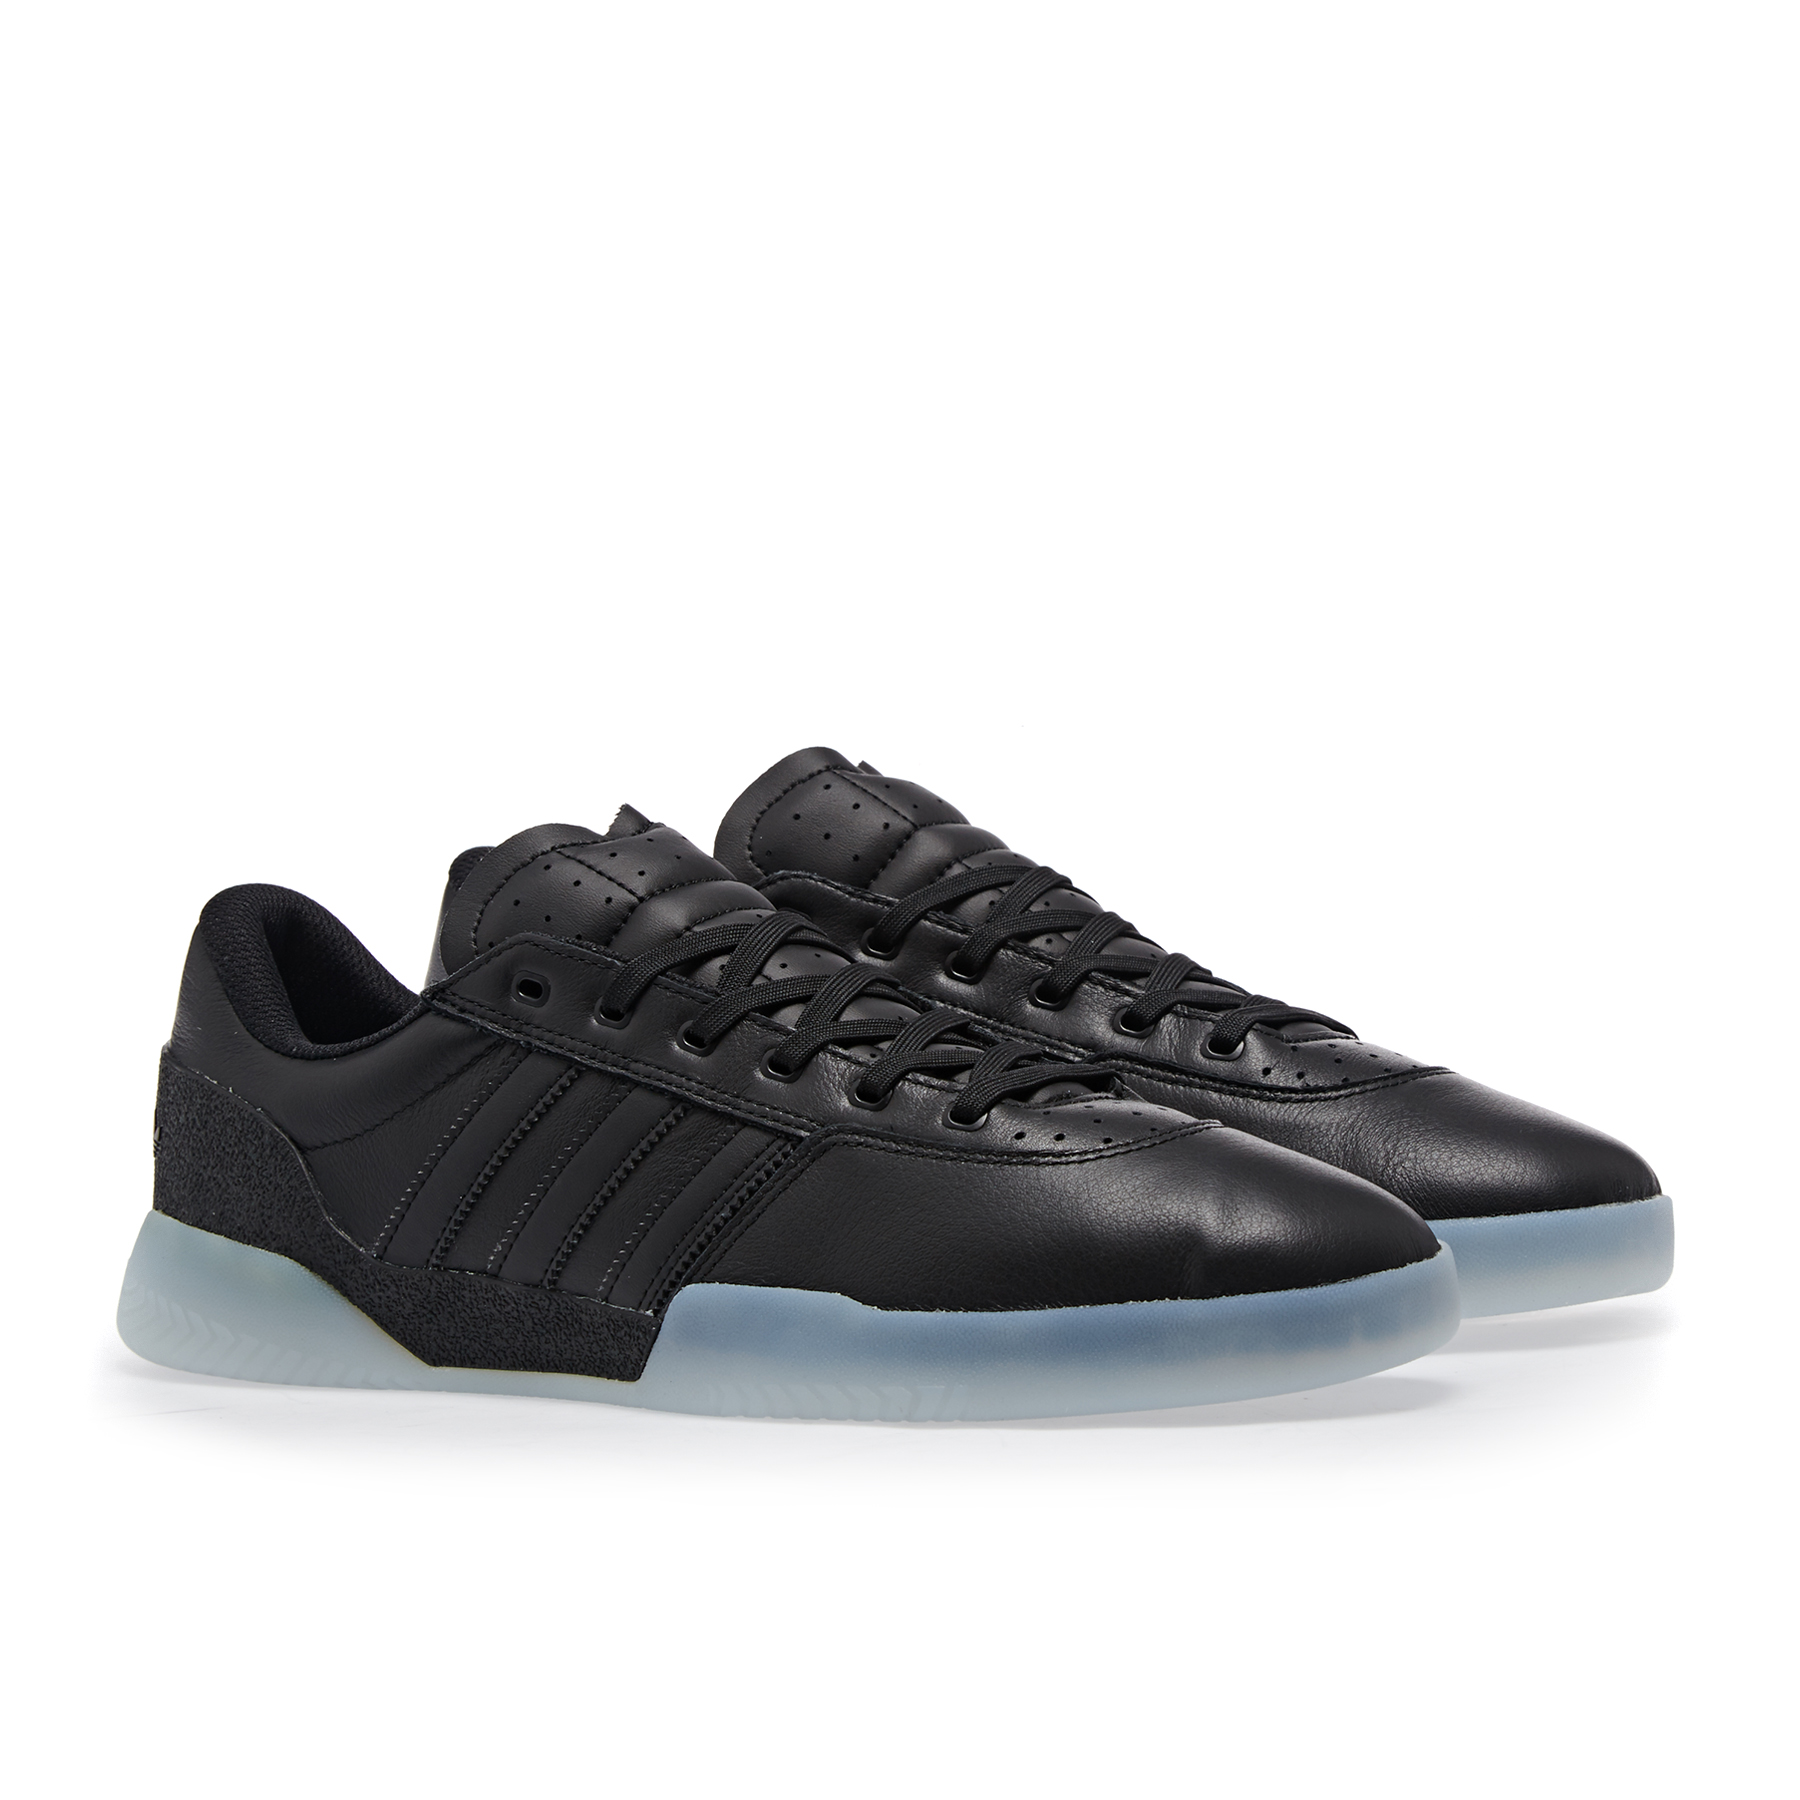 Adidas City Cup Shoes - Free Delivery